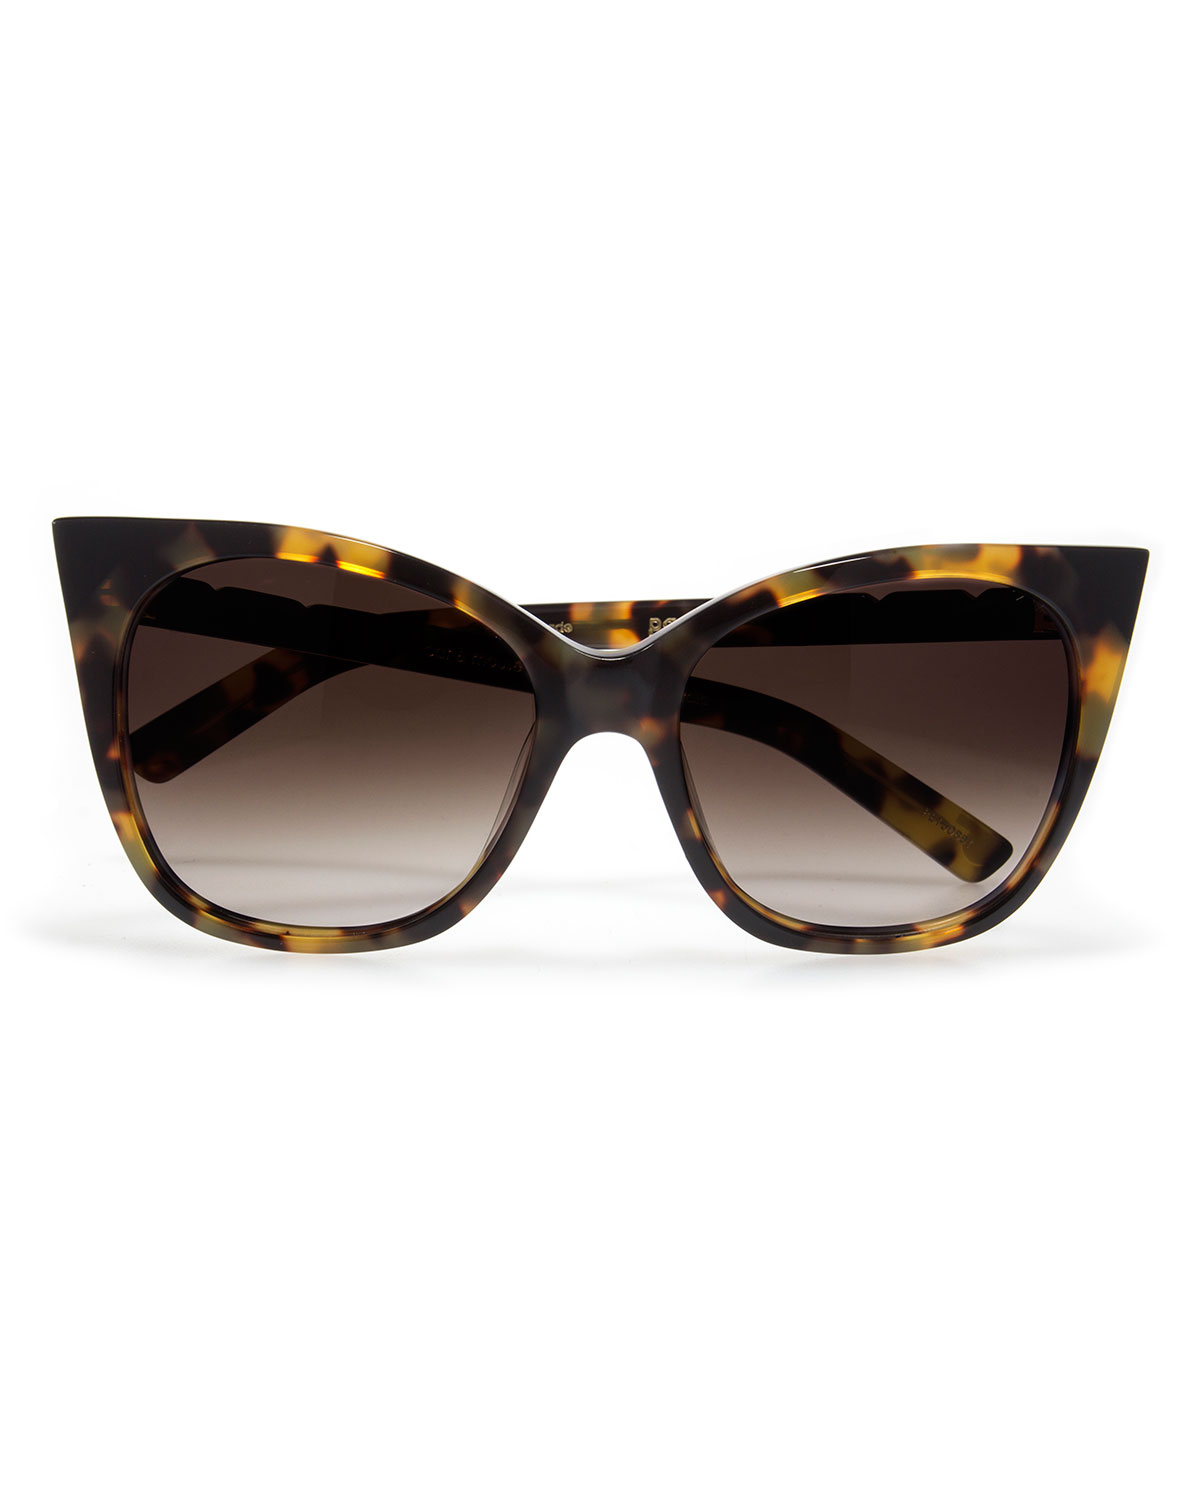 3c8a65df03a Pared Eyewear Cat and Mouse Cat-Eye Sunglasses